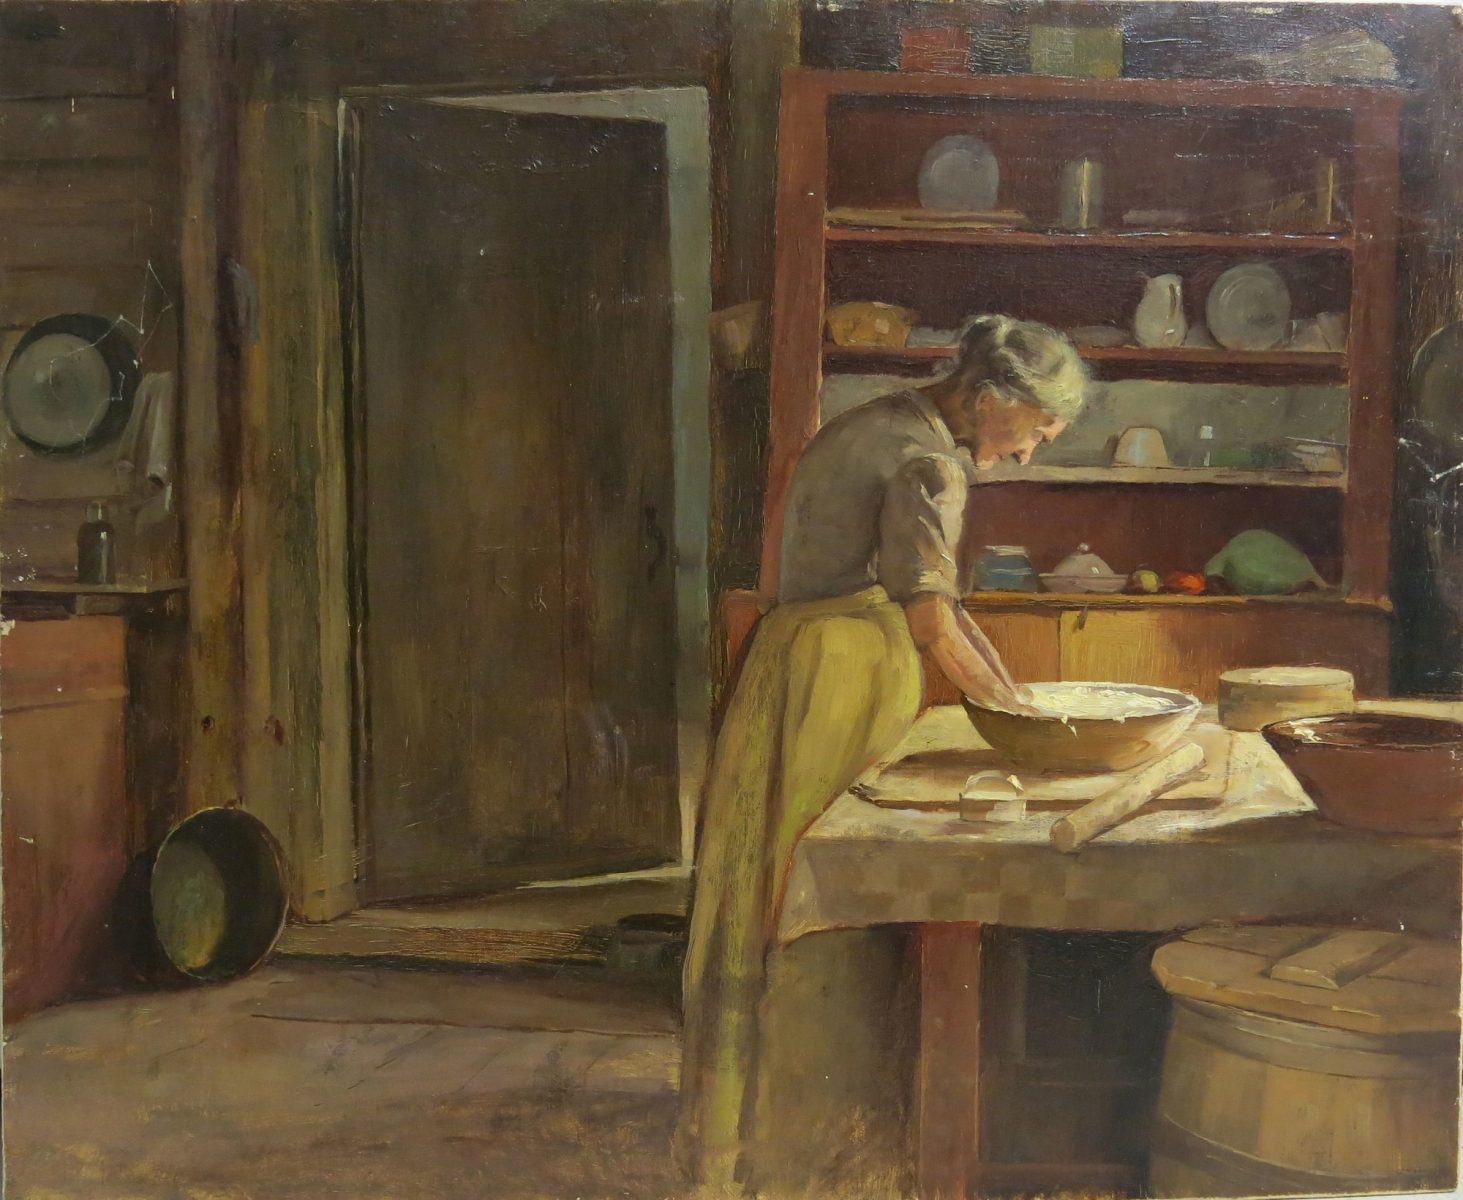 Painting of woman baking bread in the kitchen